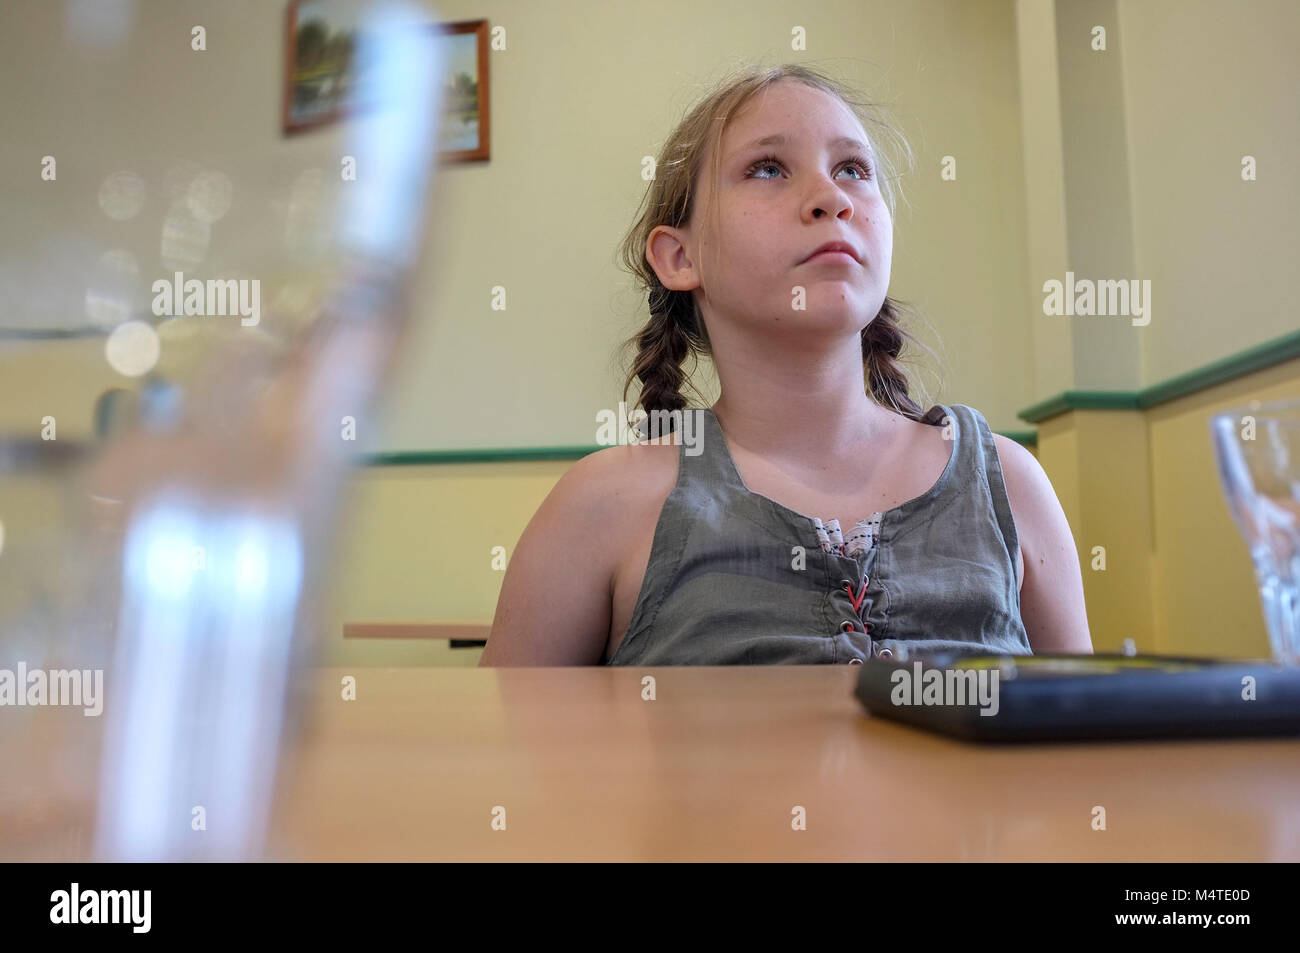 Pre-teen girl looking up and waiting for a meal in a pub. - Stock Image